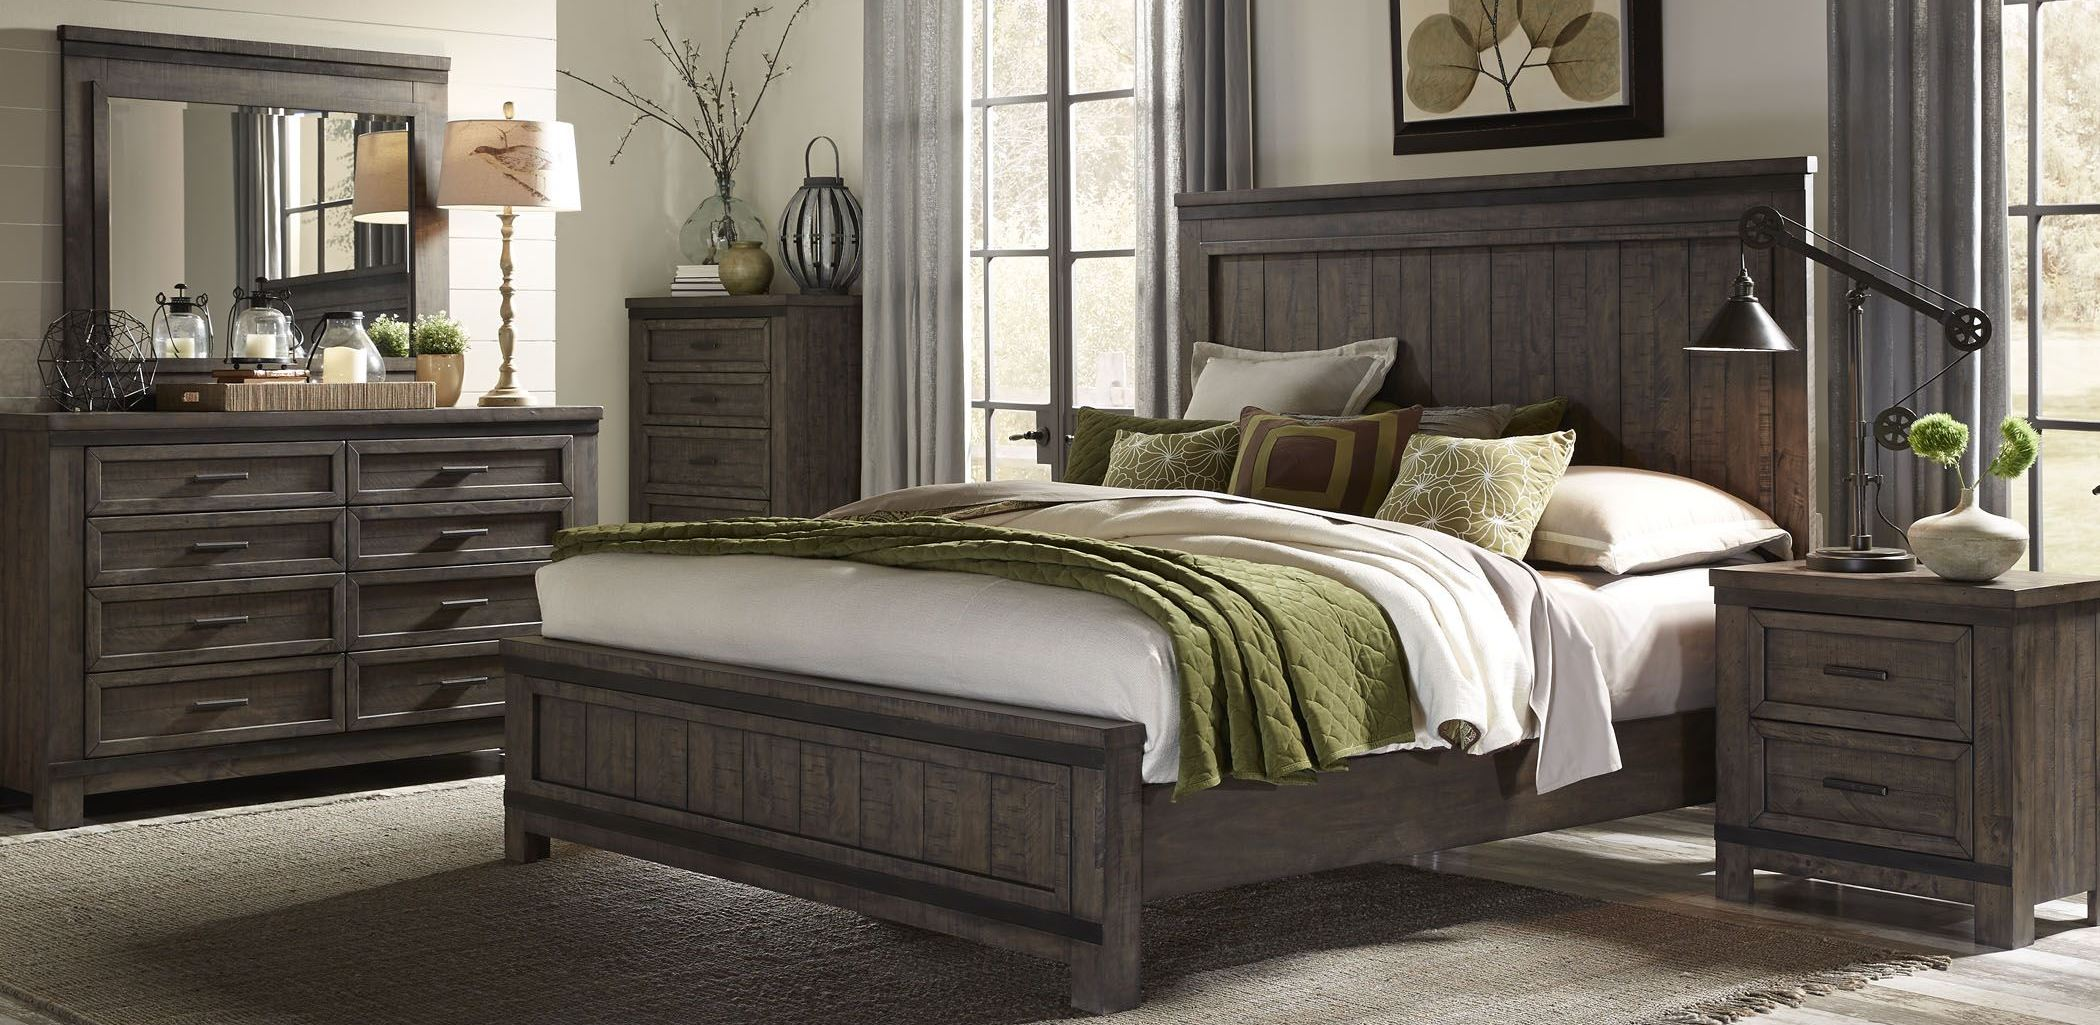 Thornwood Hills Rock Beaten Gray Panel Bedroom SetMedia Image